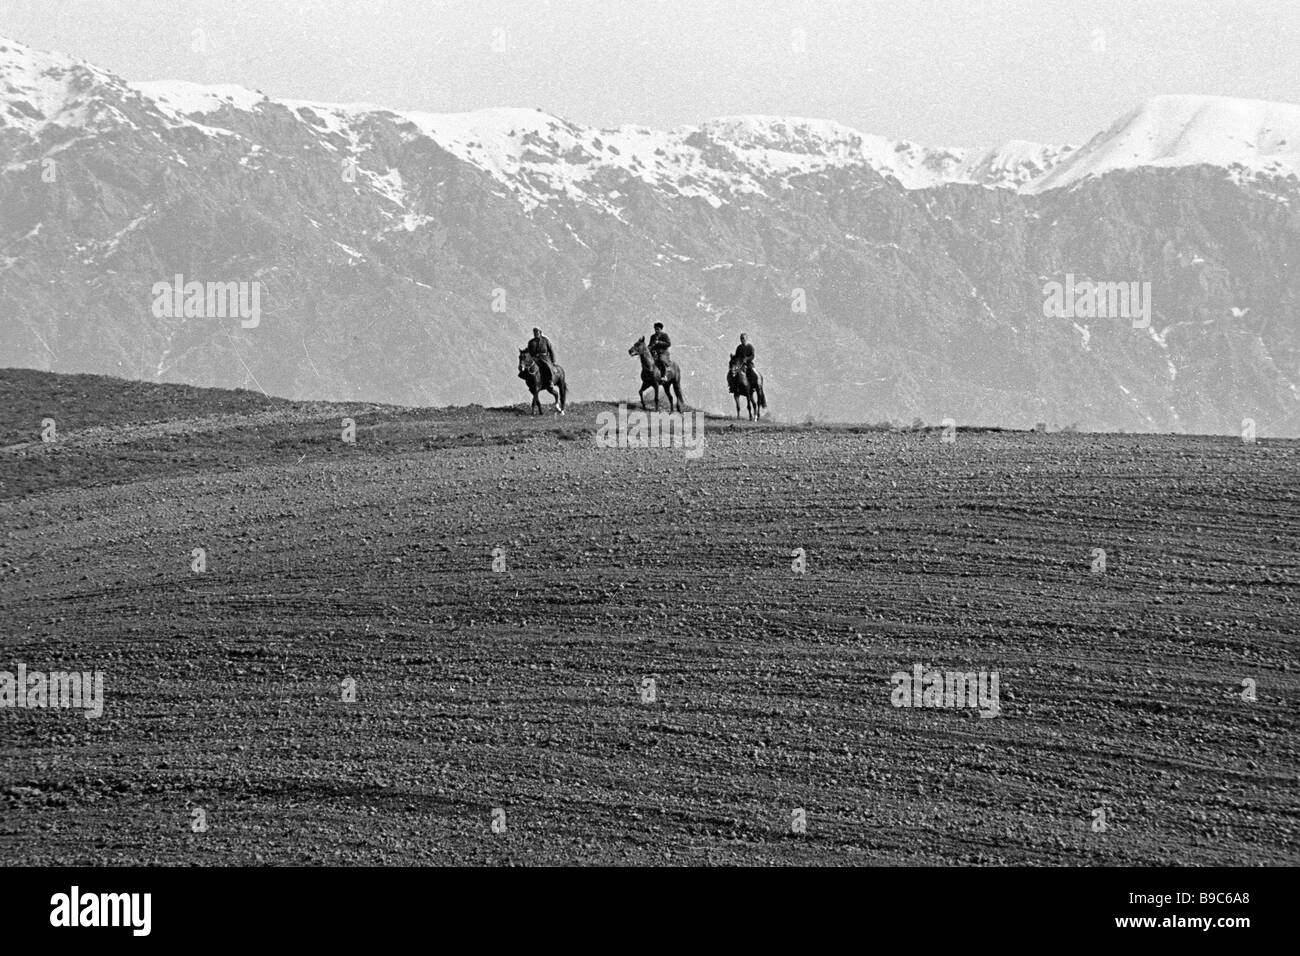 Horsemen in foothills of the Gissar range - Stock Image